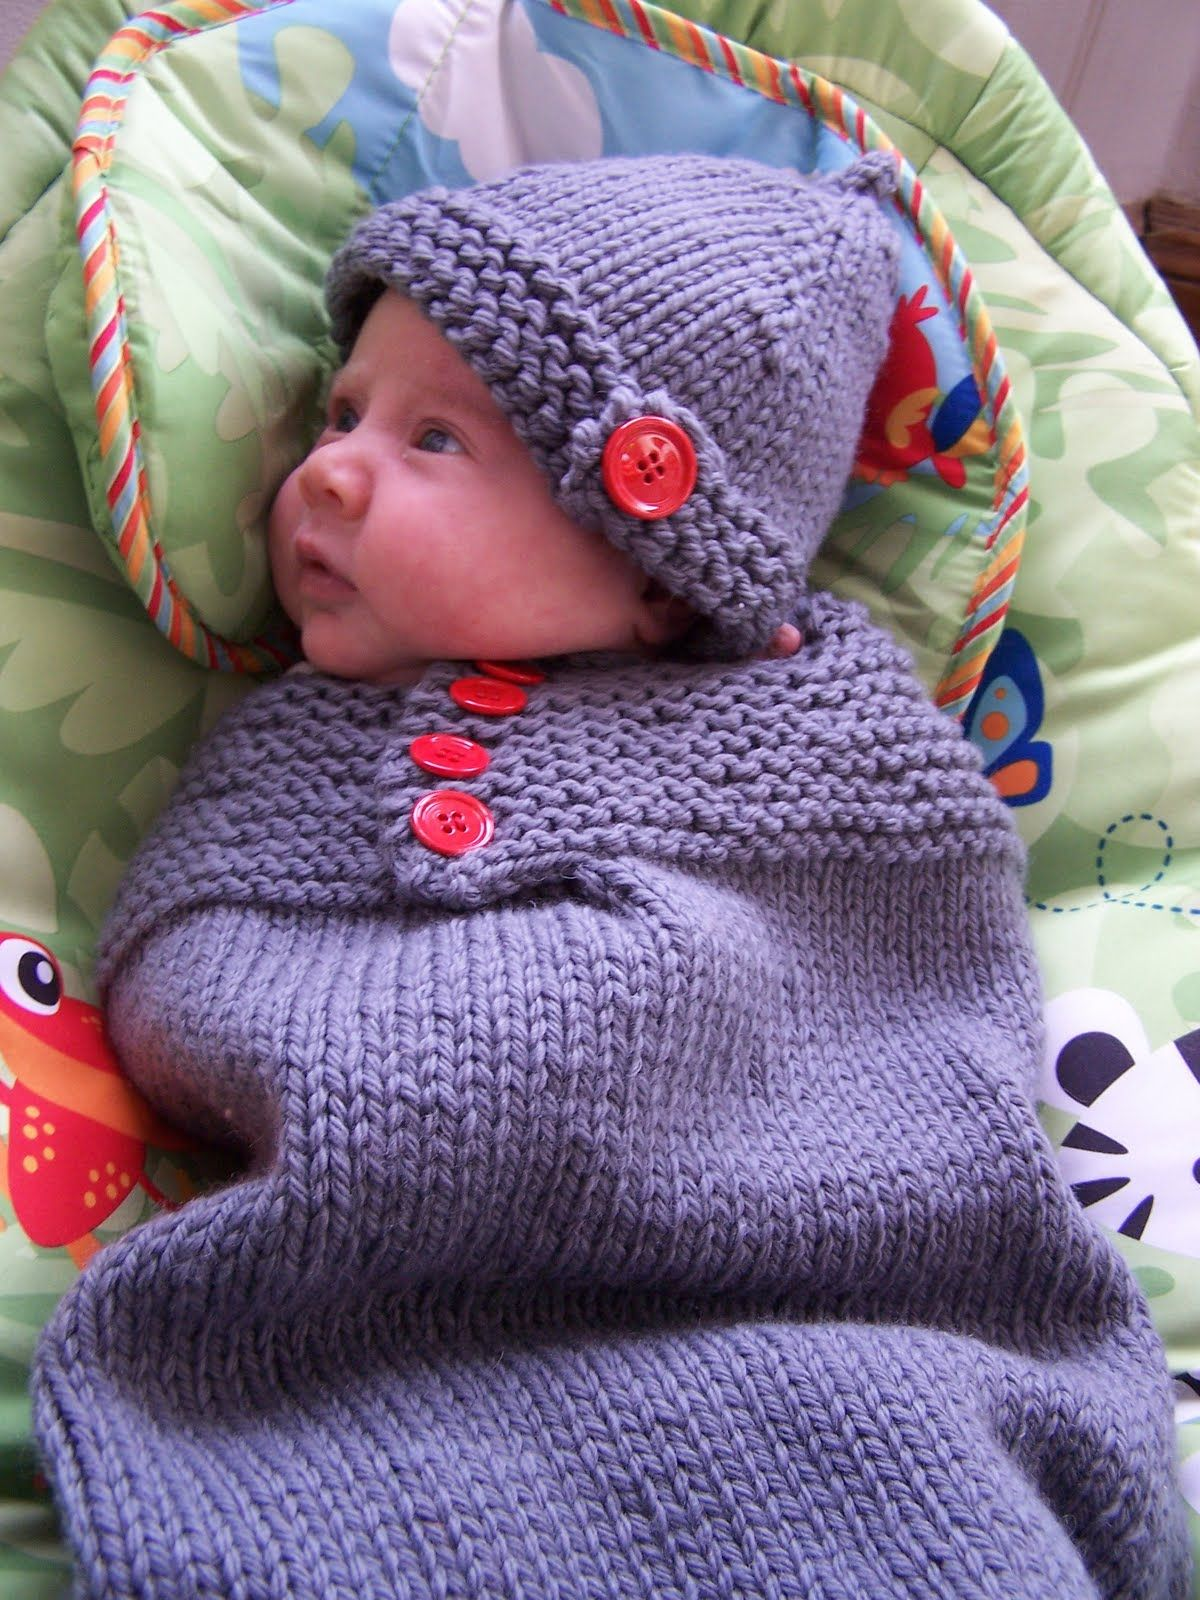 35+ Adorable Crochet and Knitted Baby Cocoon Patterns | Mütze häkeln ...